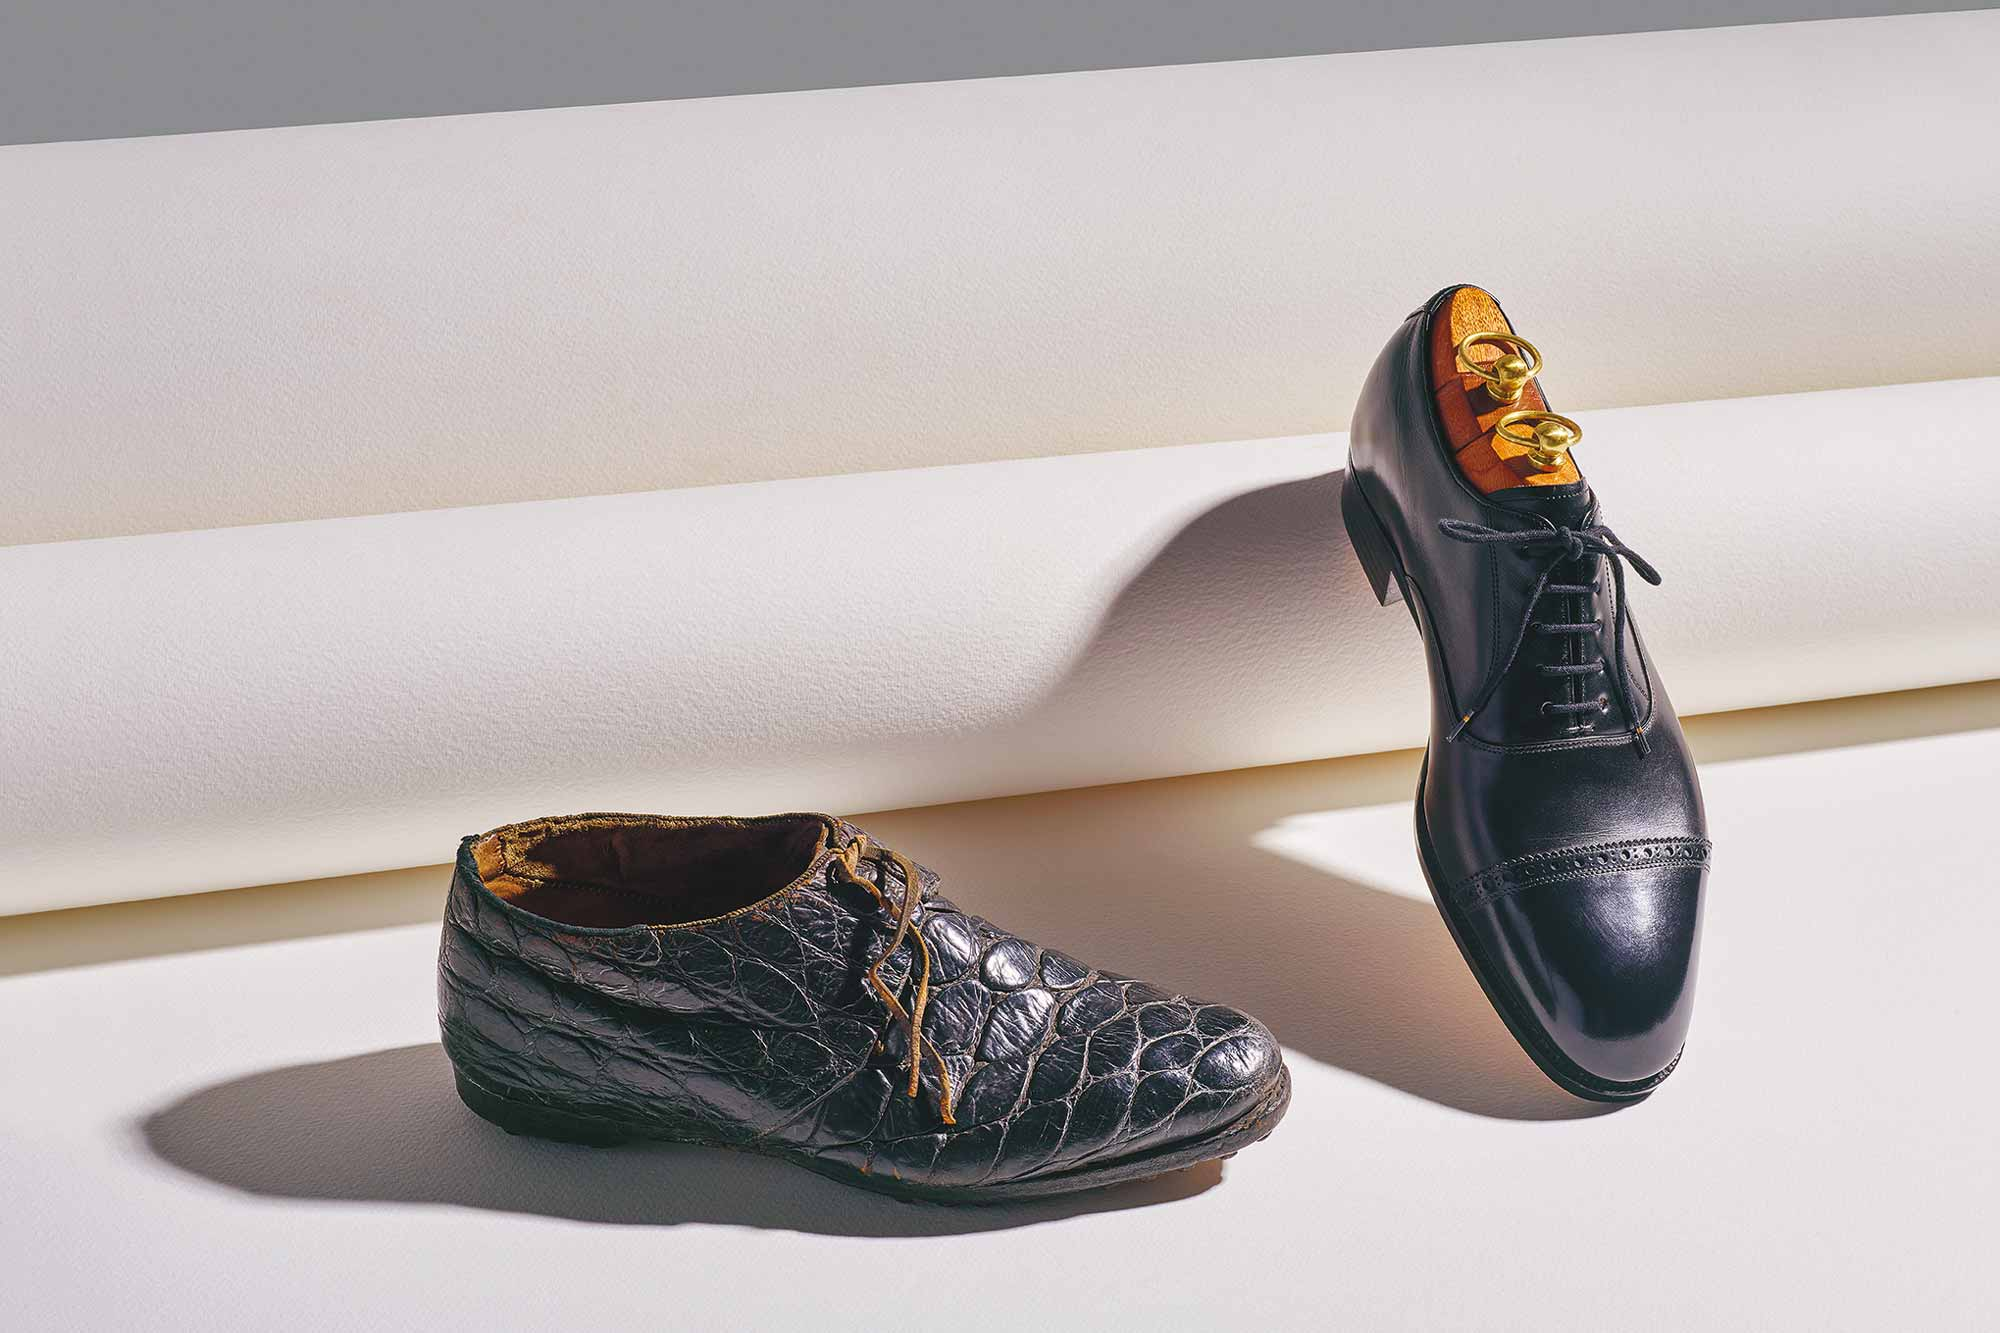 An 1850 crocodile shoe (left) belonging to Sir Philip de Malpas Grey Egerton, 10th Baronet, eminent palaentologist and Member of Parliament, beside a modern Men's Black Oxford Shoe by Mariano